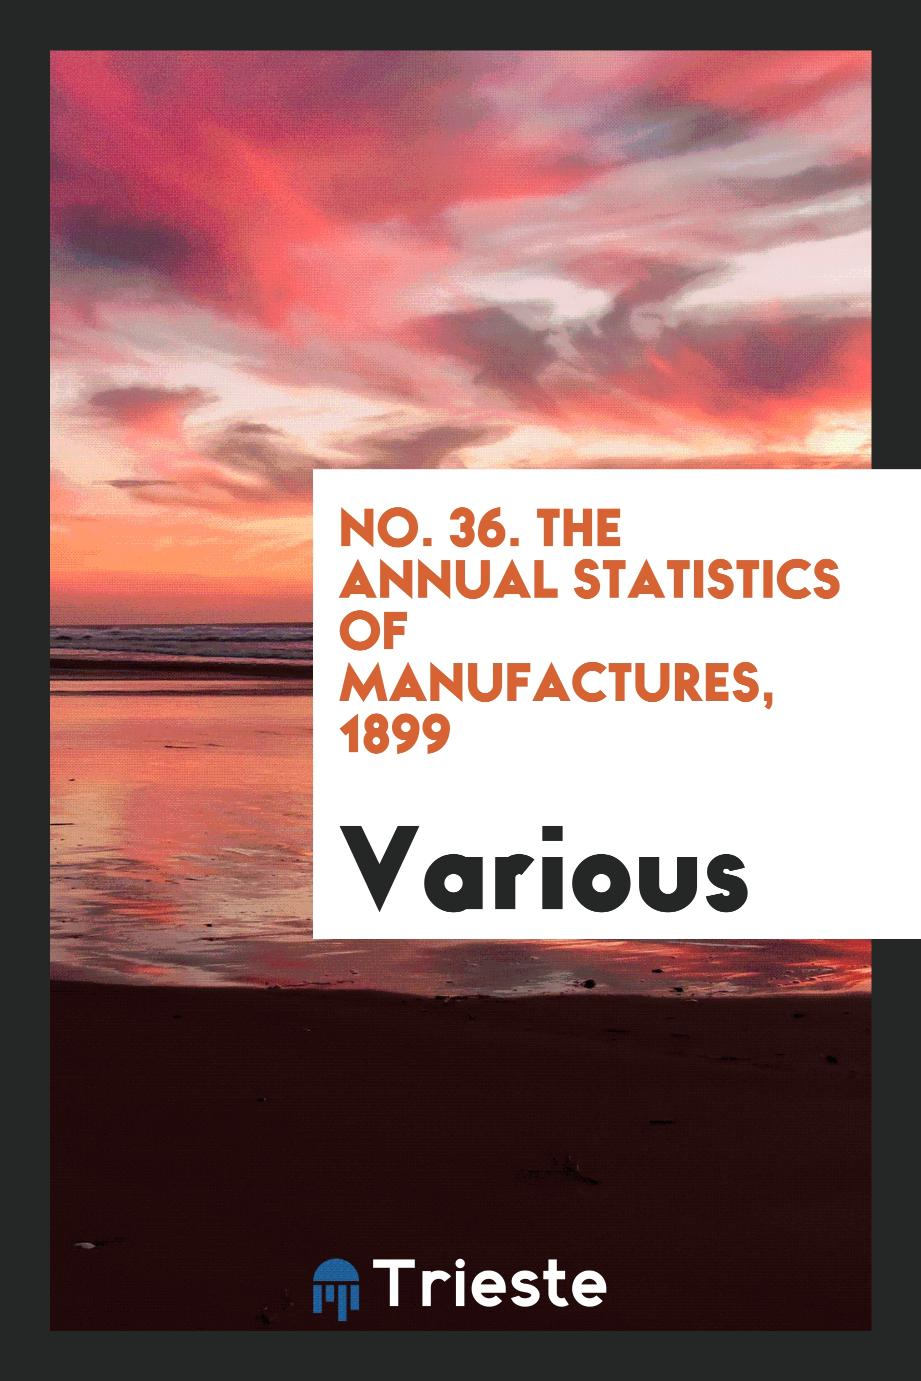 No. 36. The Annual Statistics of Manufactures, 1899